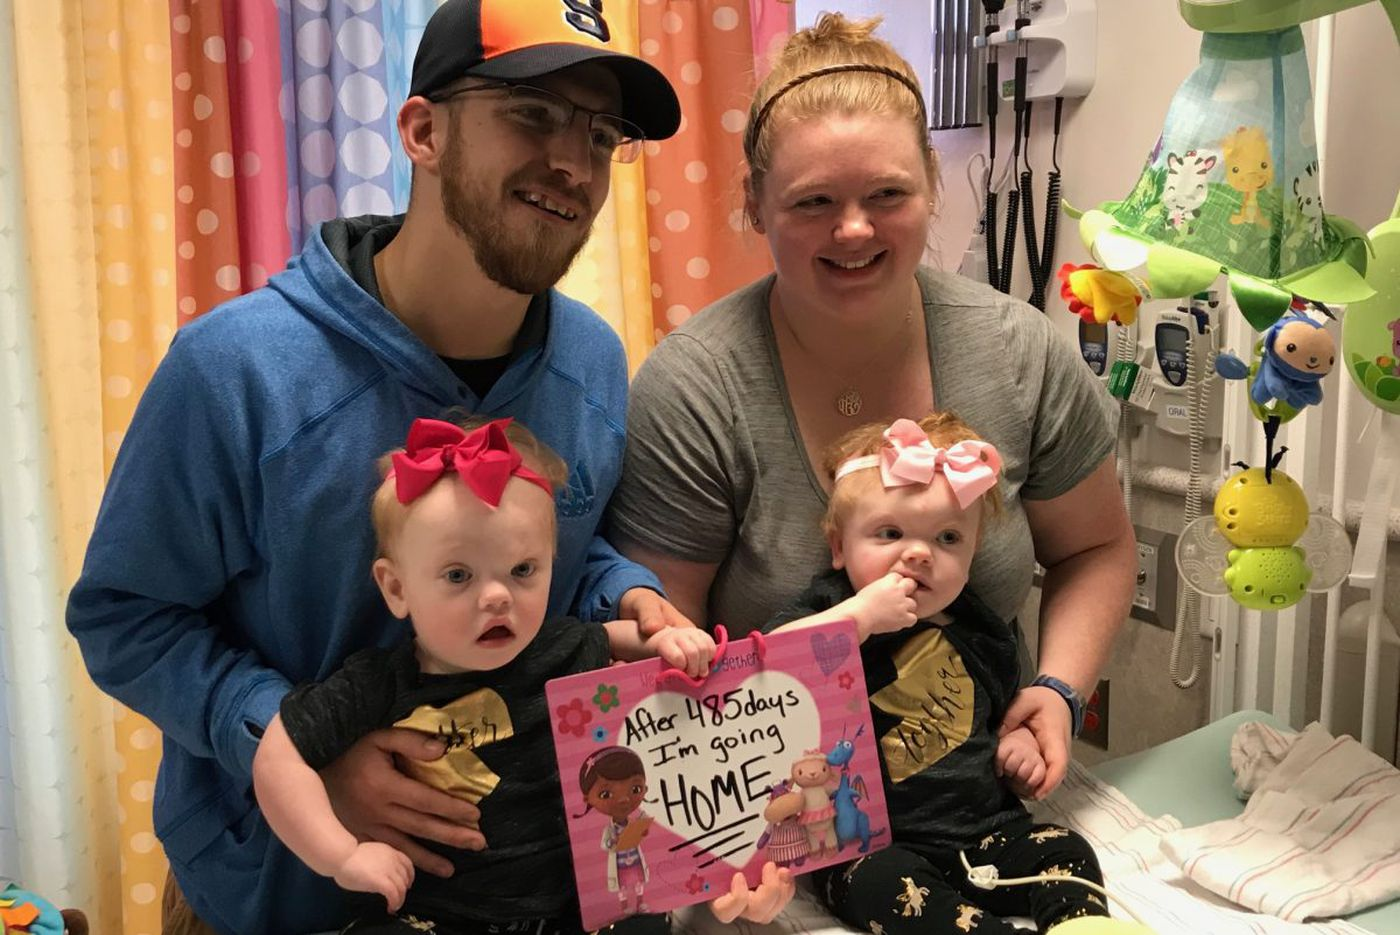 Separated twins leave Philly hospital to celebrate Thanksgiving at home with family